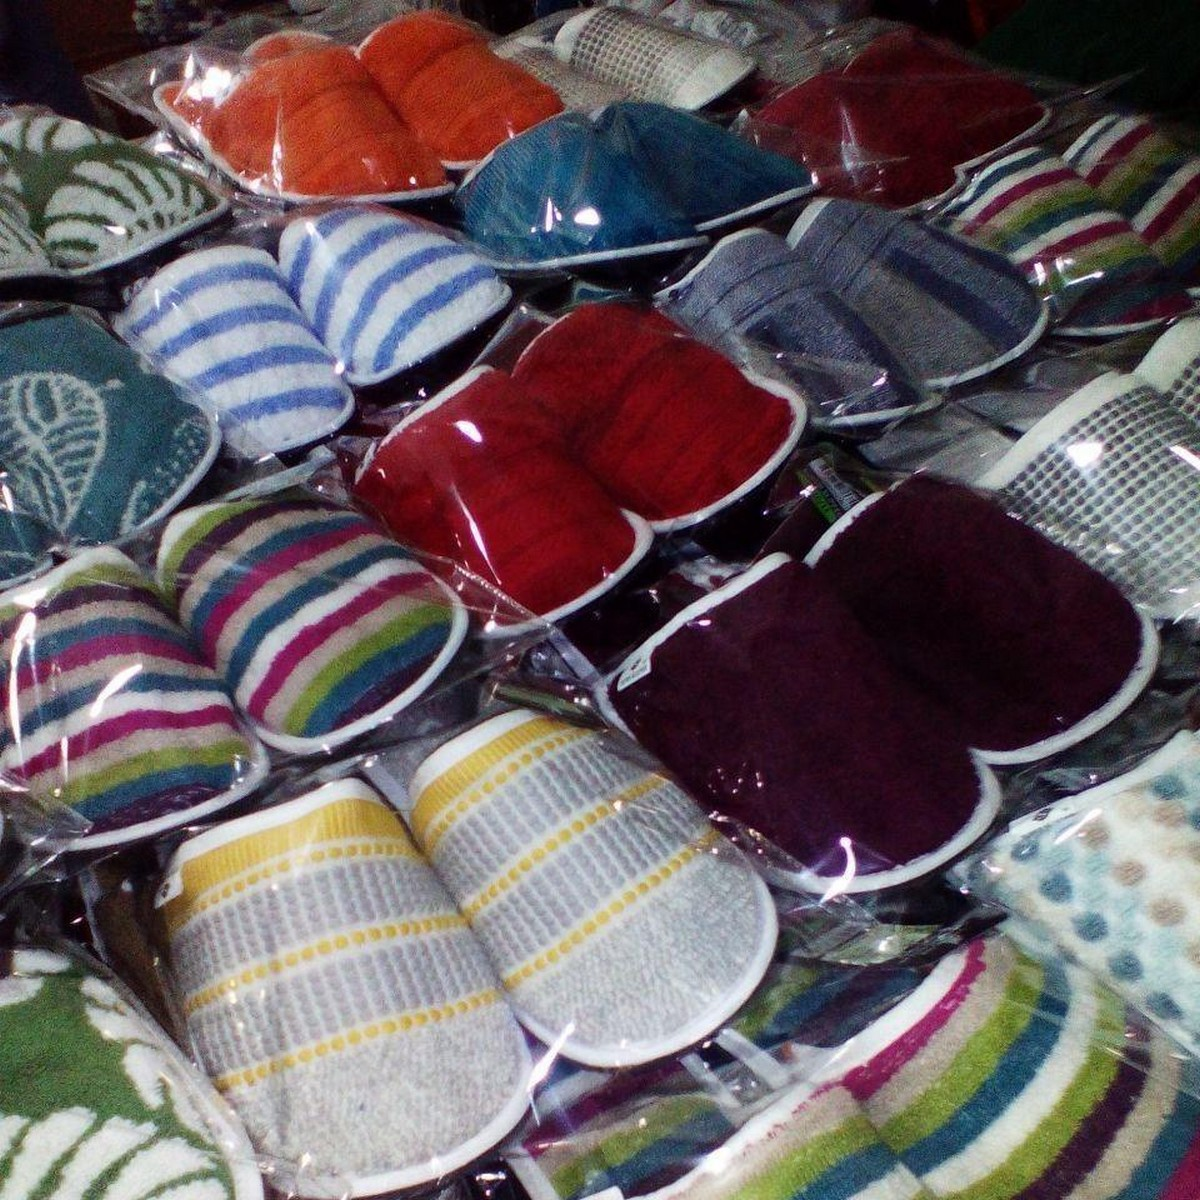 Imported Quality Cotton Slippers For Women